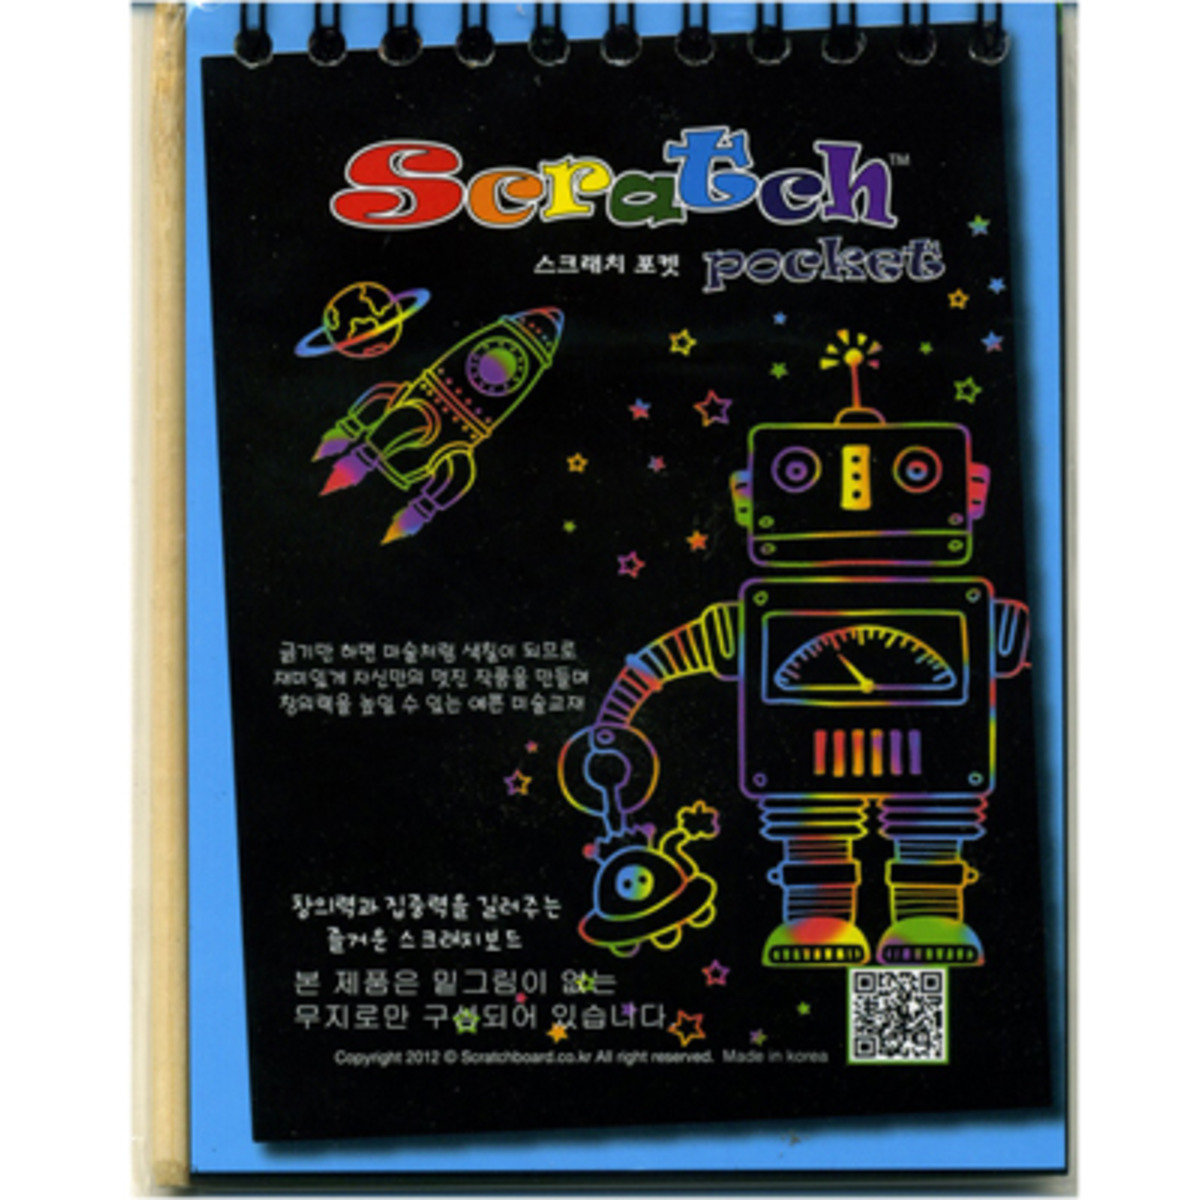 SCRATCH POCKET - BLANK PAPER (BOY) 8809379160269